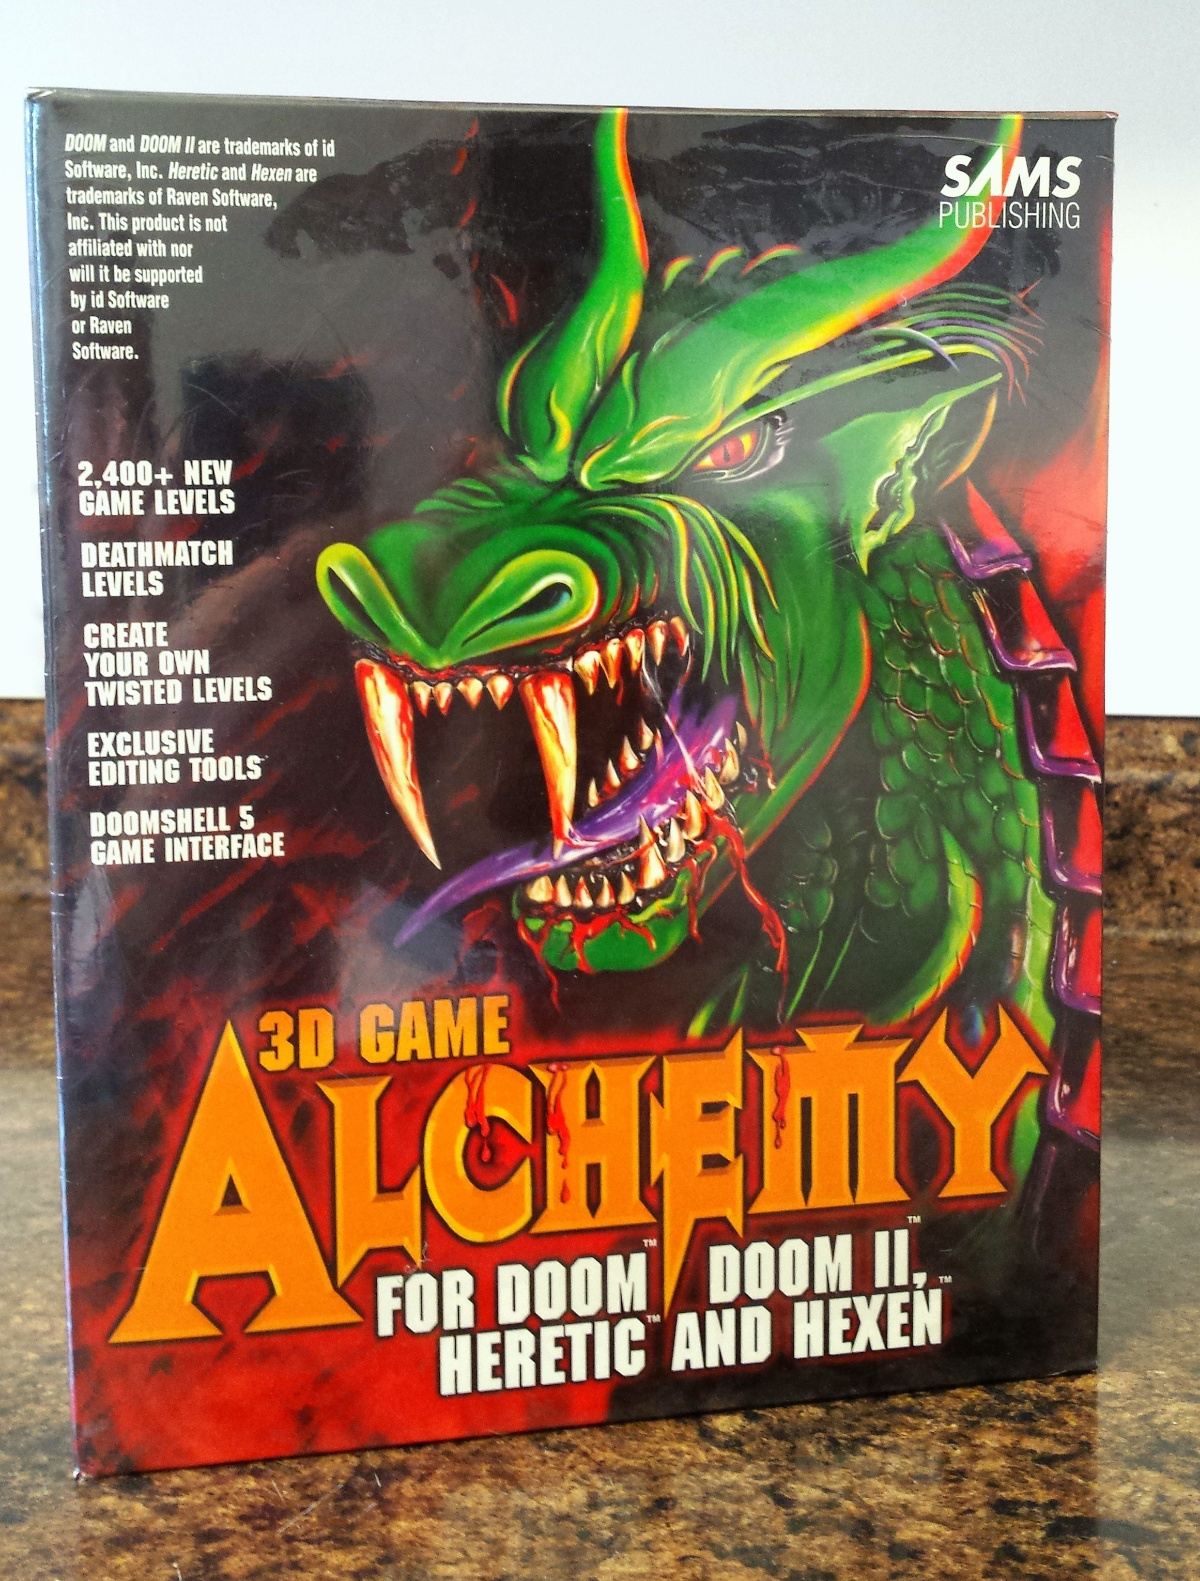 Aukro and eBay auction gallery - NEW SEALED 3D Game Alchemy